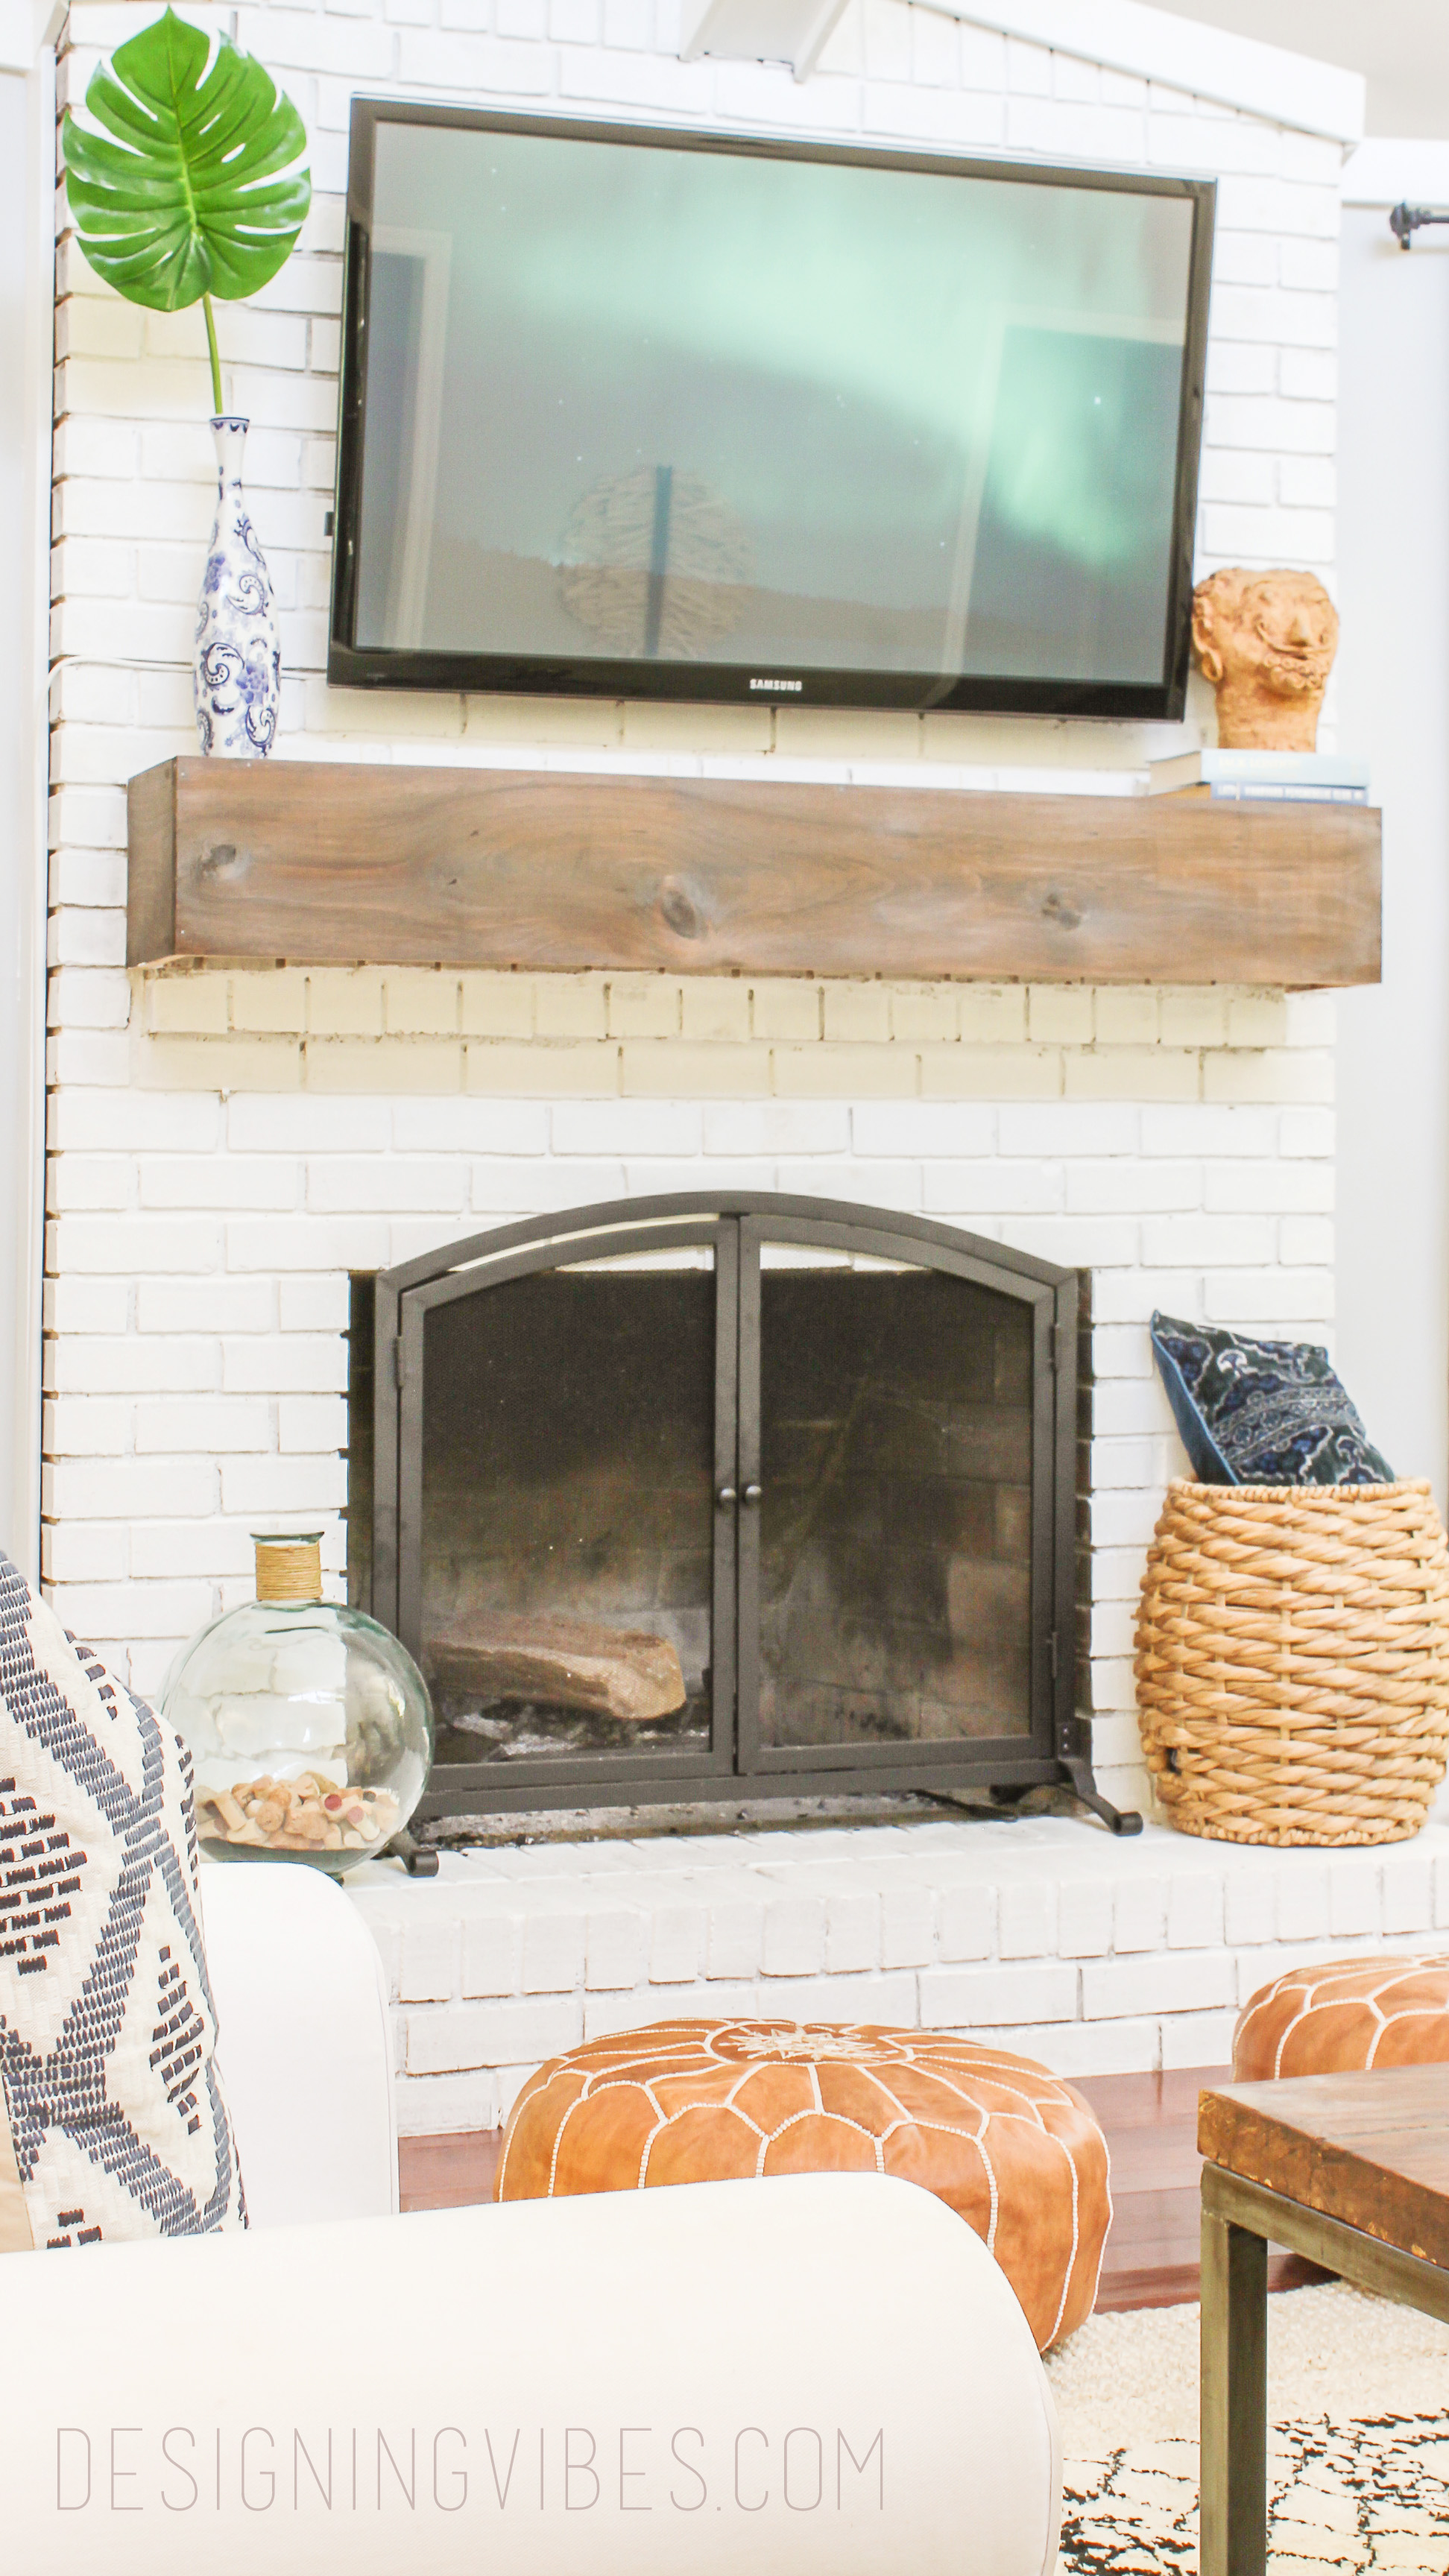 Lime Wash Brick Fireplace My Painted Brick Fireplace 3 Years Later A Cautionary Tale